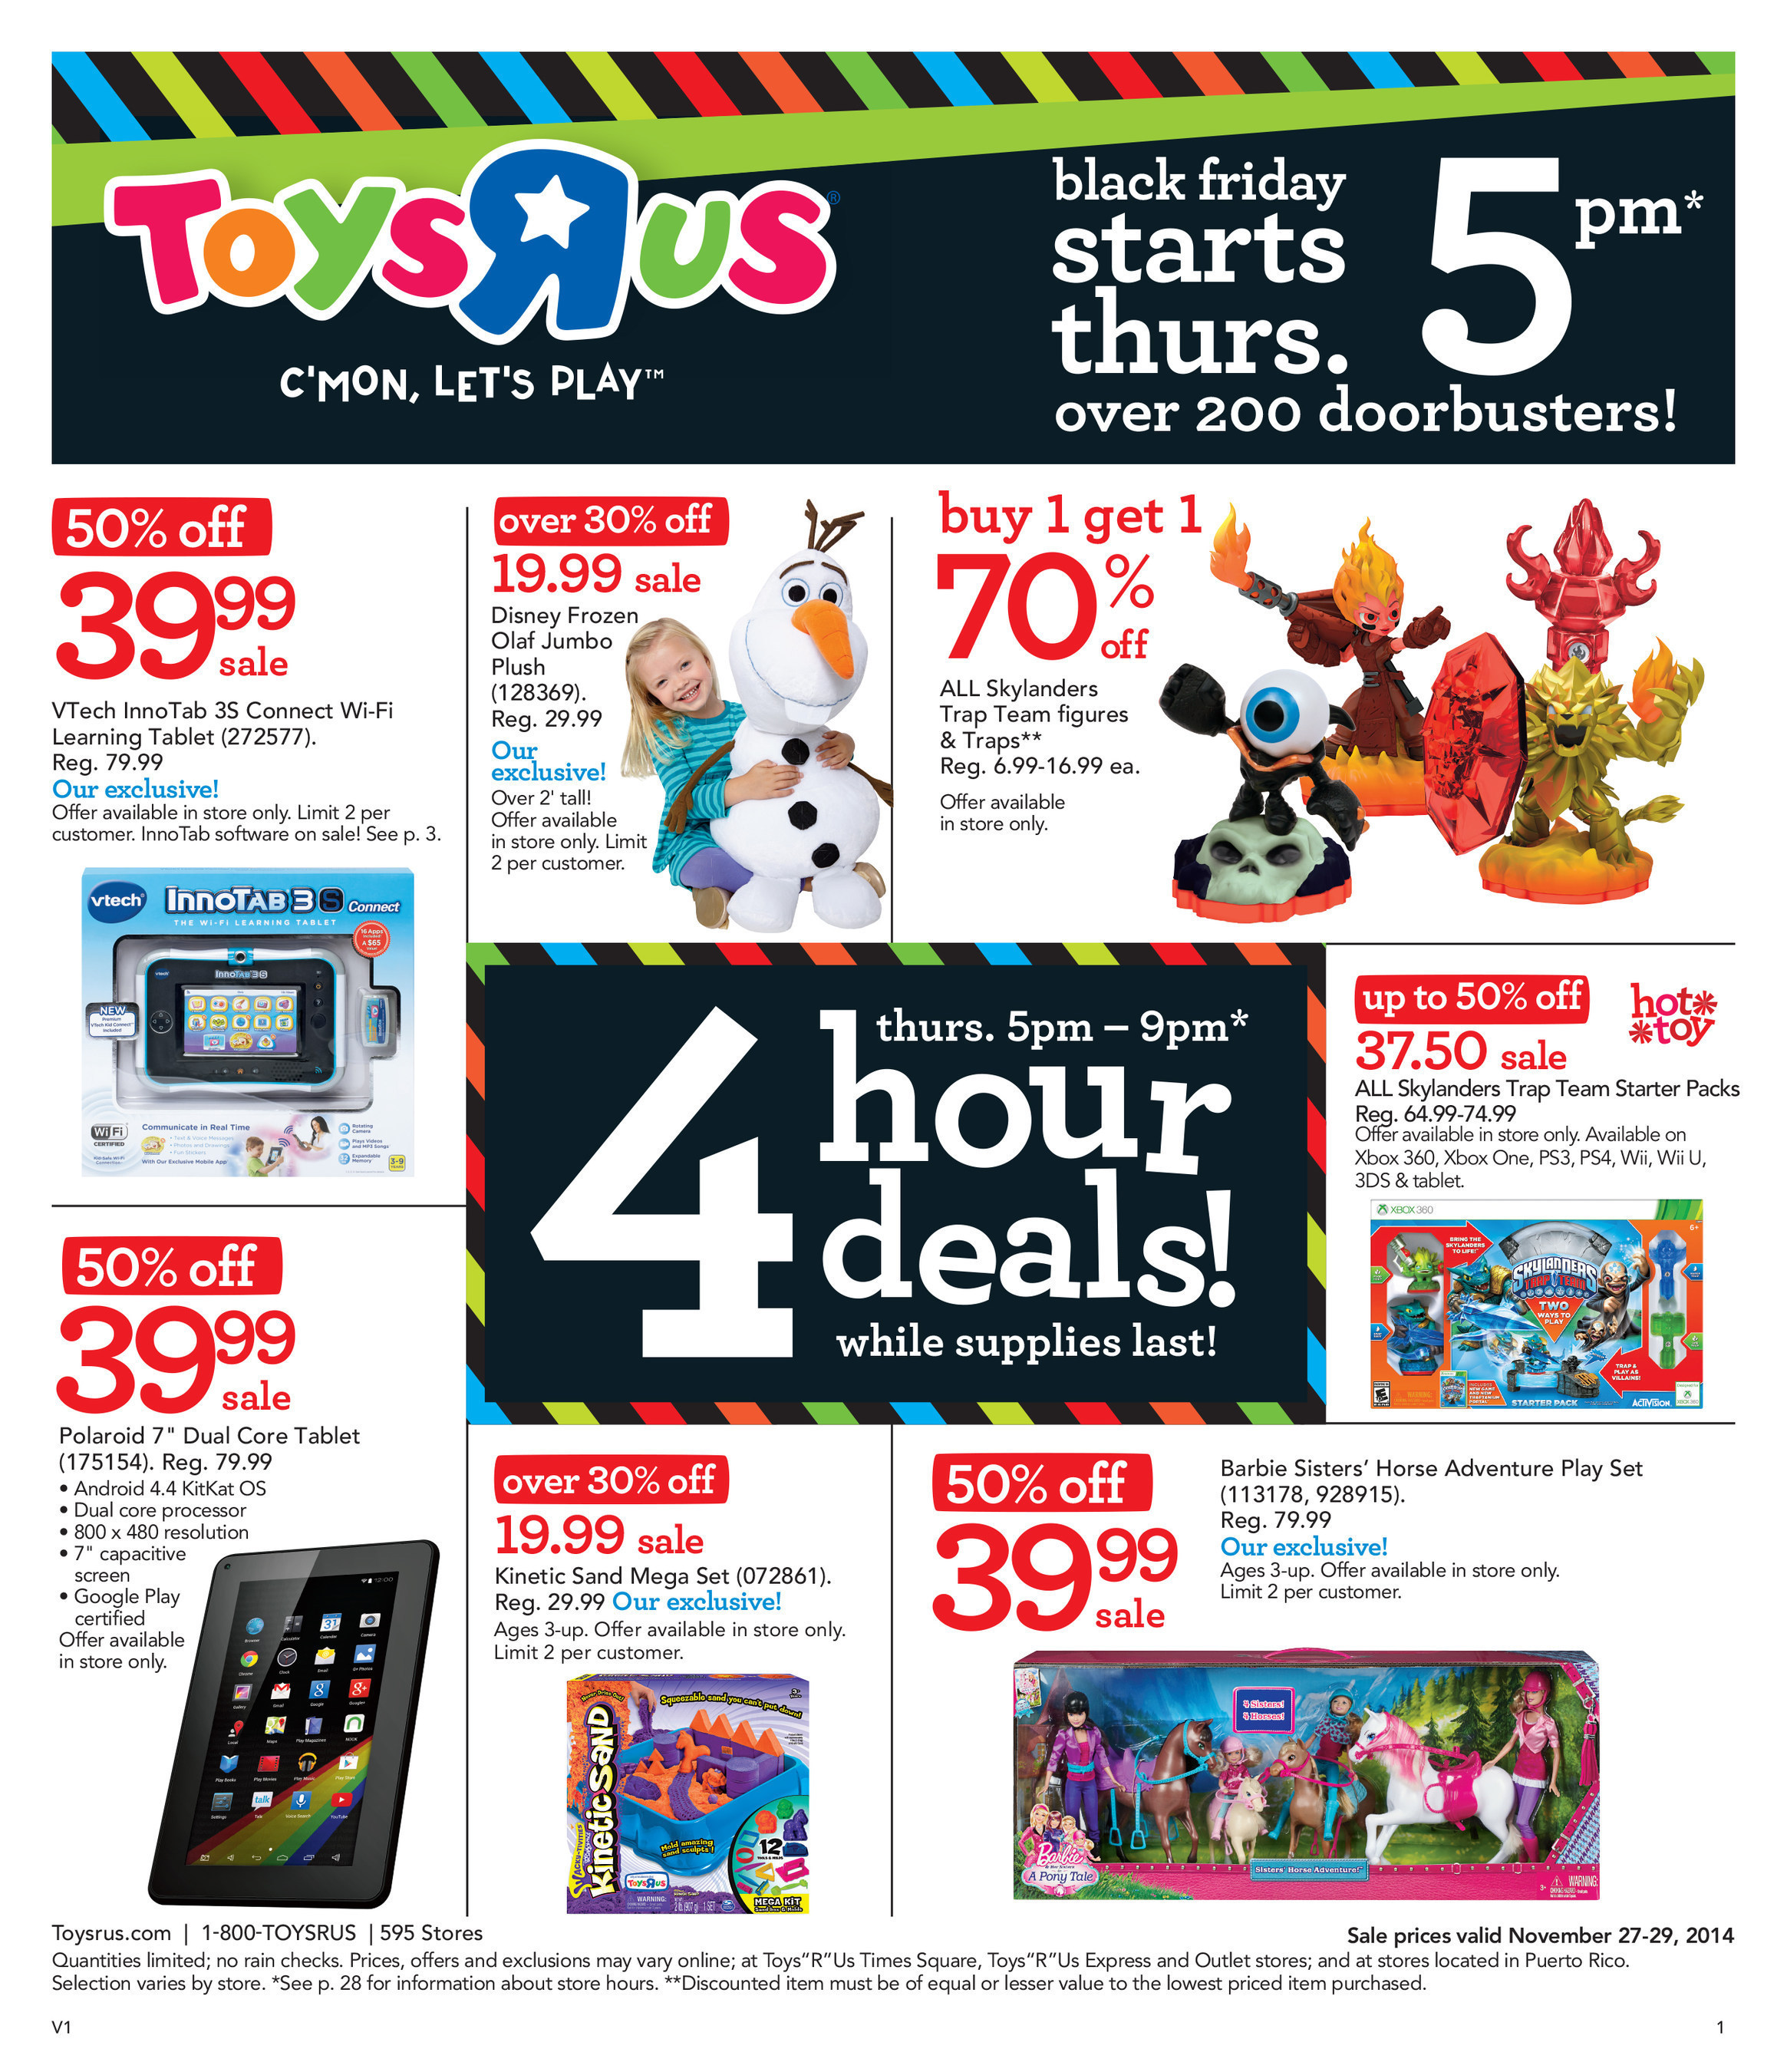 Toys R Us Announces 2014 Thanksgiving Weekend Doorbusters And Provides Its Nearly 19 Million Loyal Customers With Early Access To Hot Black Friday Deals